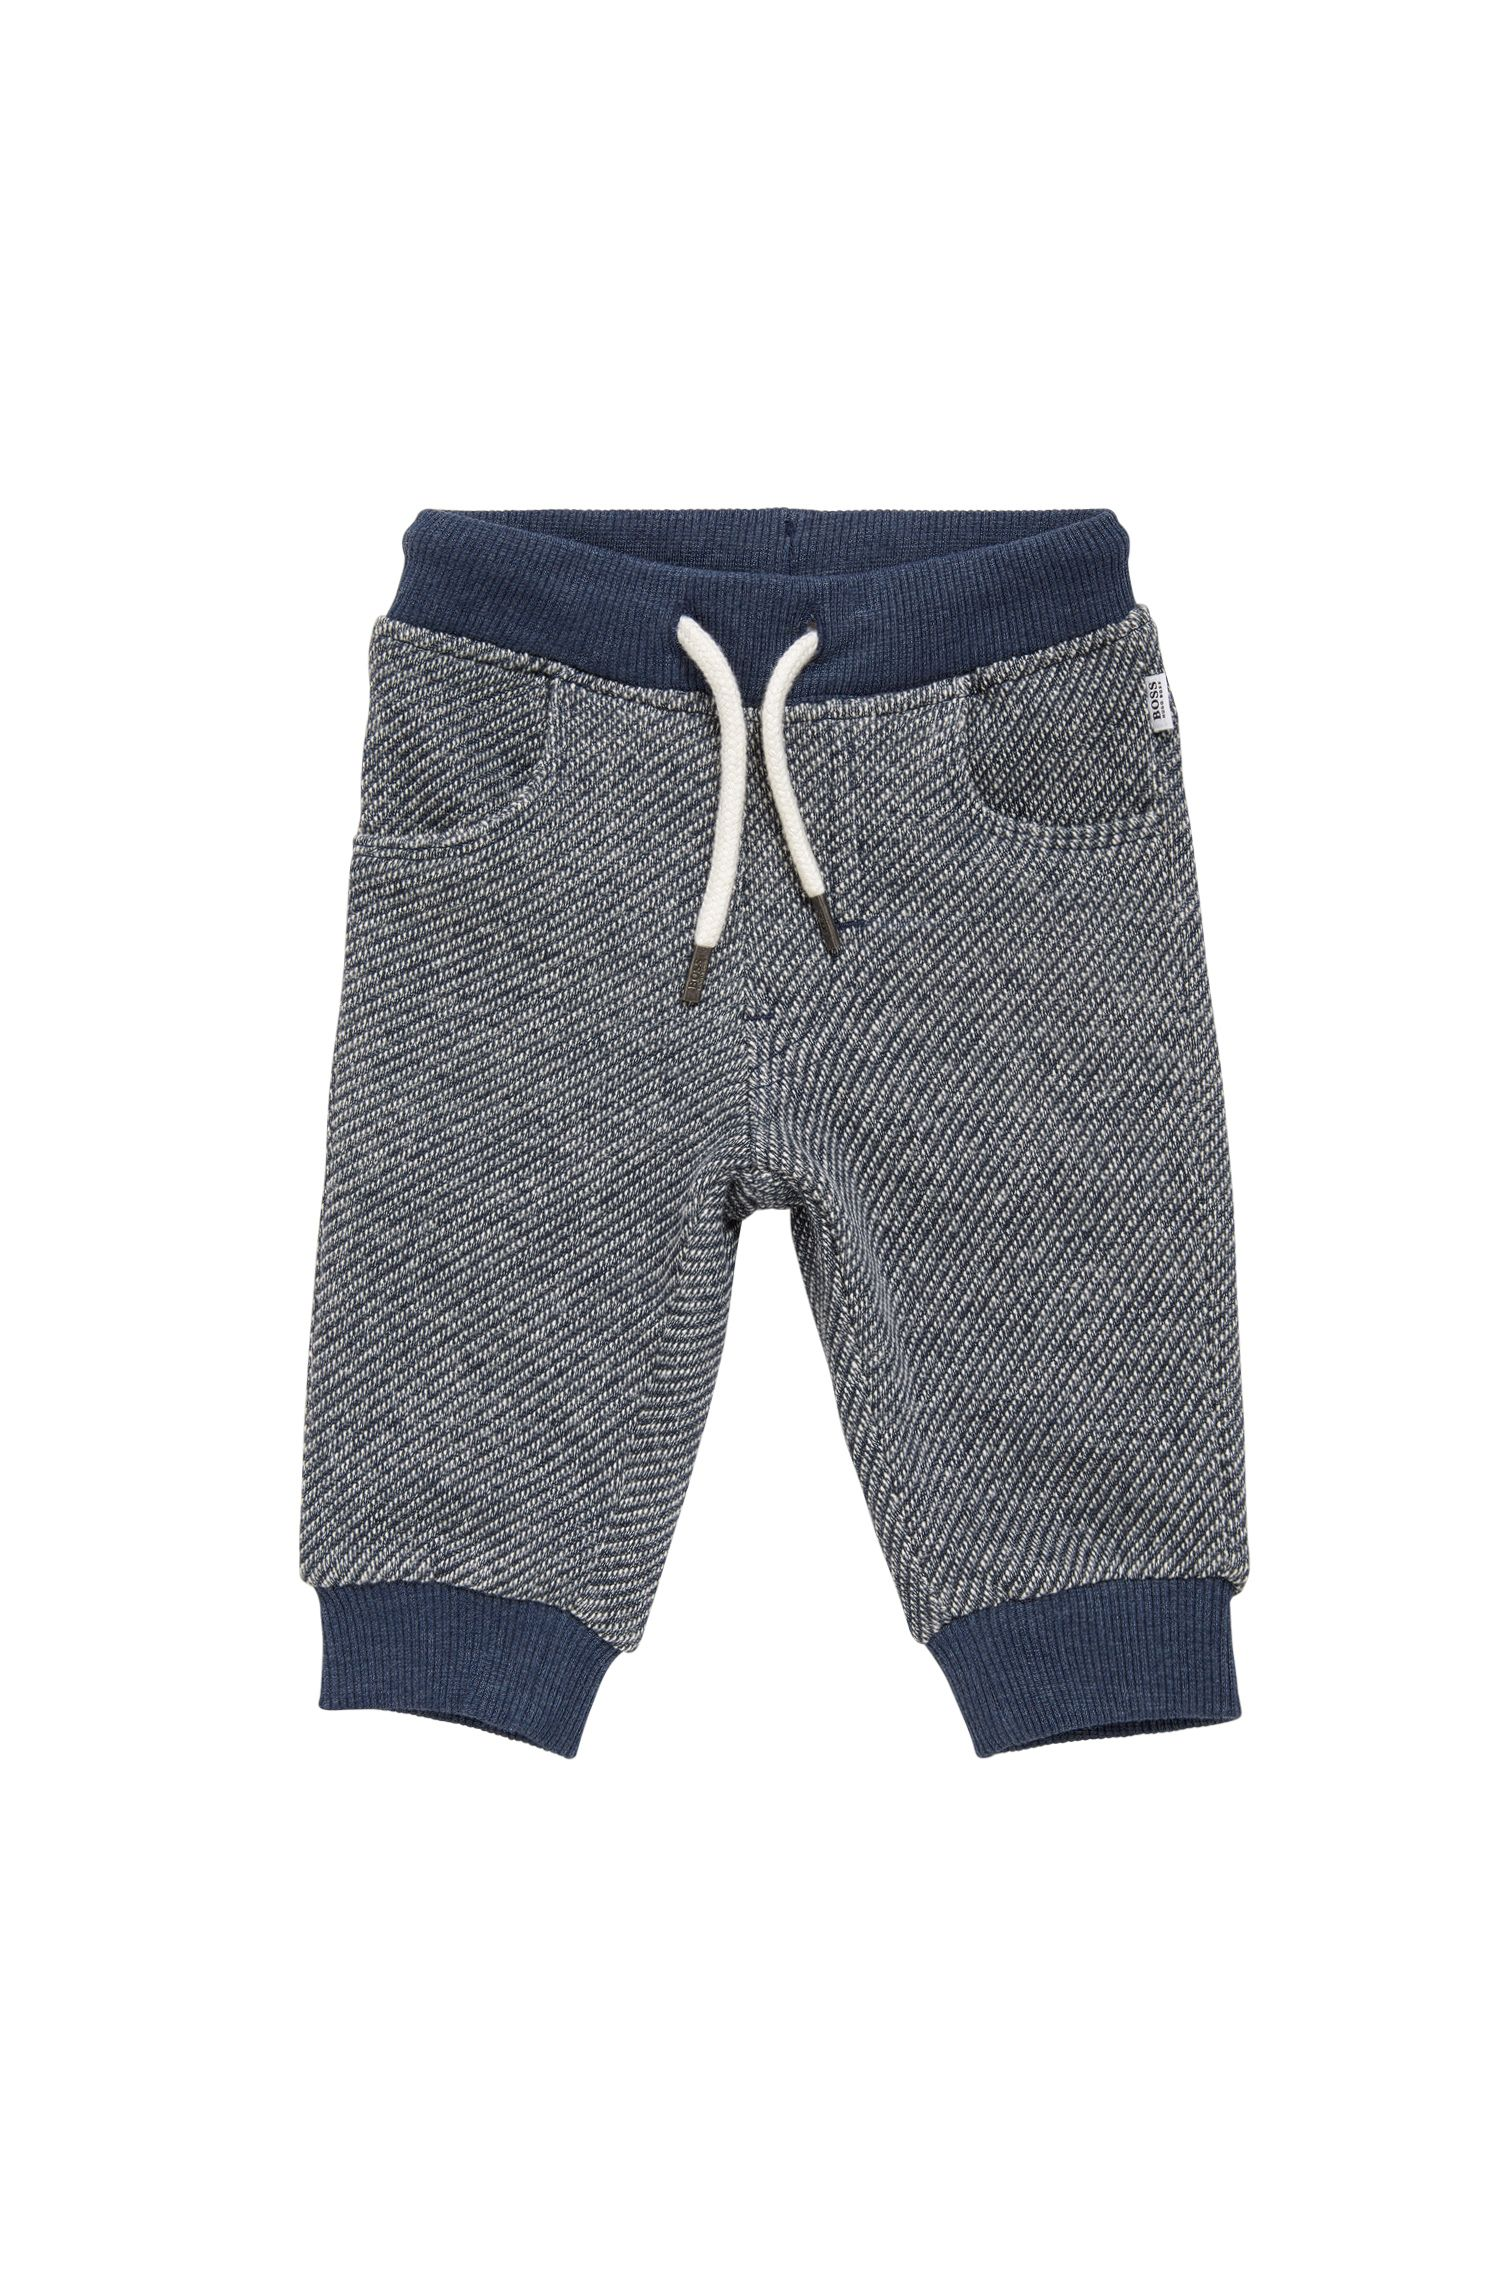 'J04245' | Toddler Cotton Drawstring Sweatpants